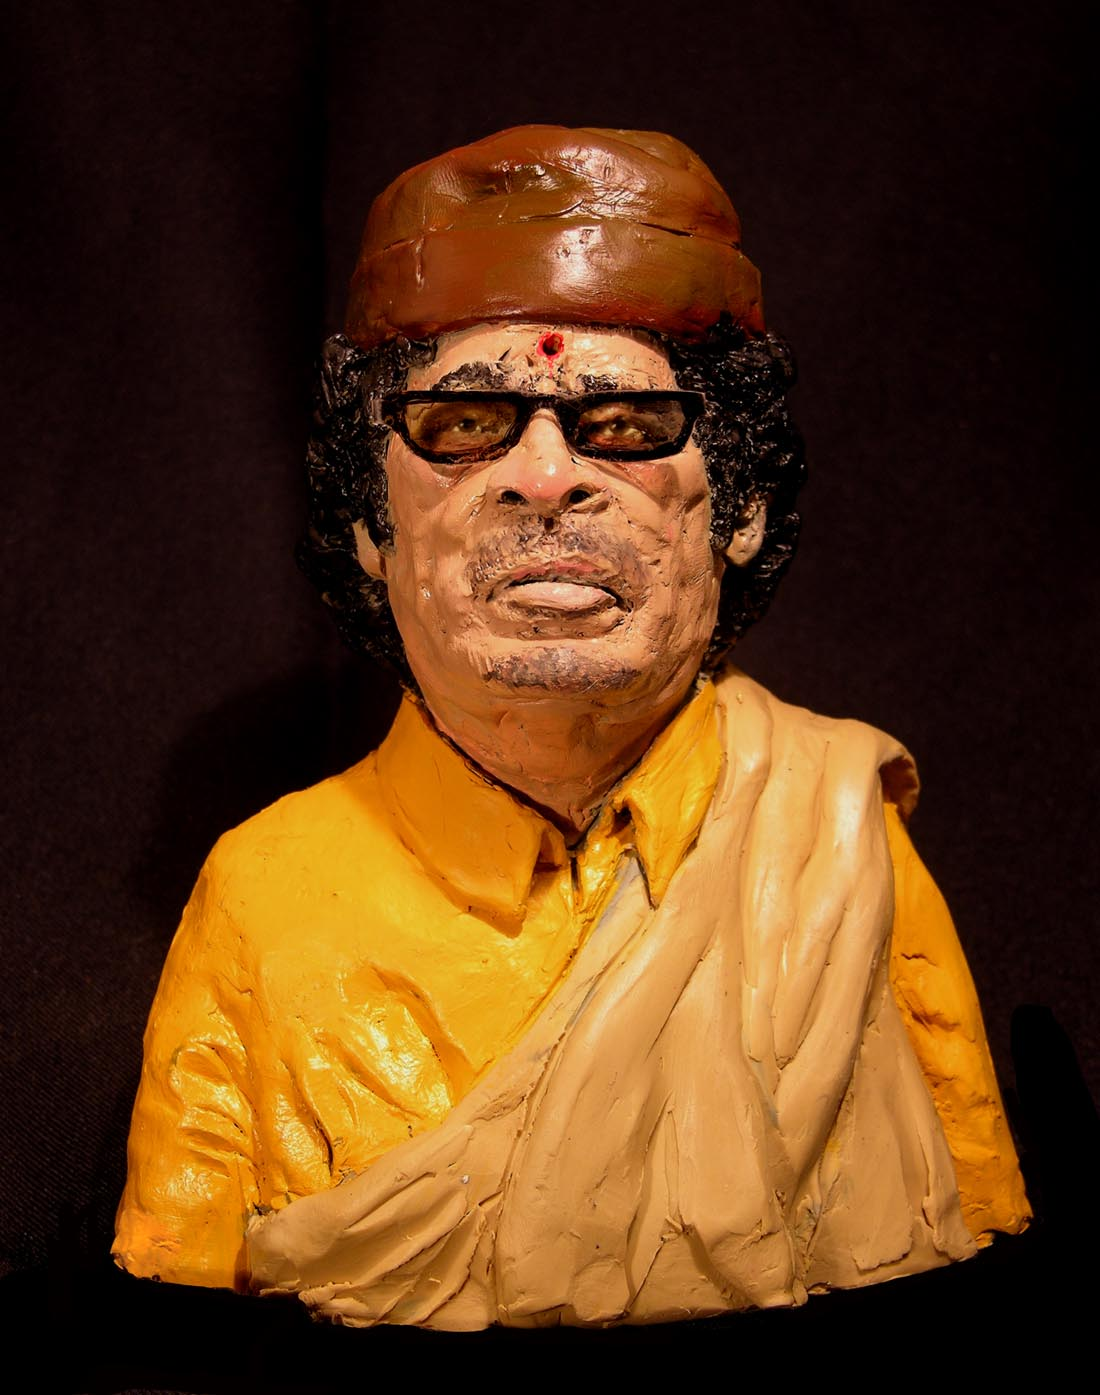 Muammar Muhammad Abu Minyar al-Gaddafi, commonly known as Colonel Gaddafi , shown with a bullet hole to the head